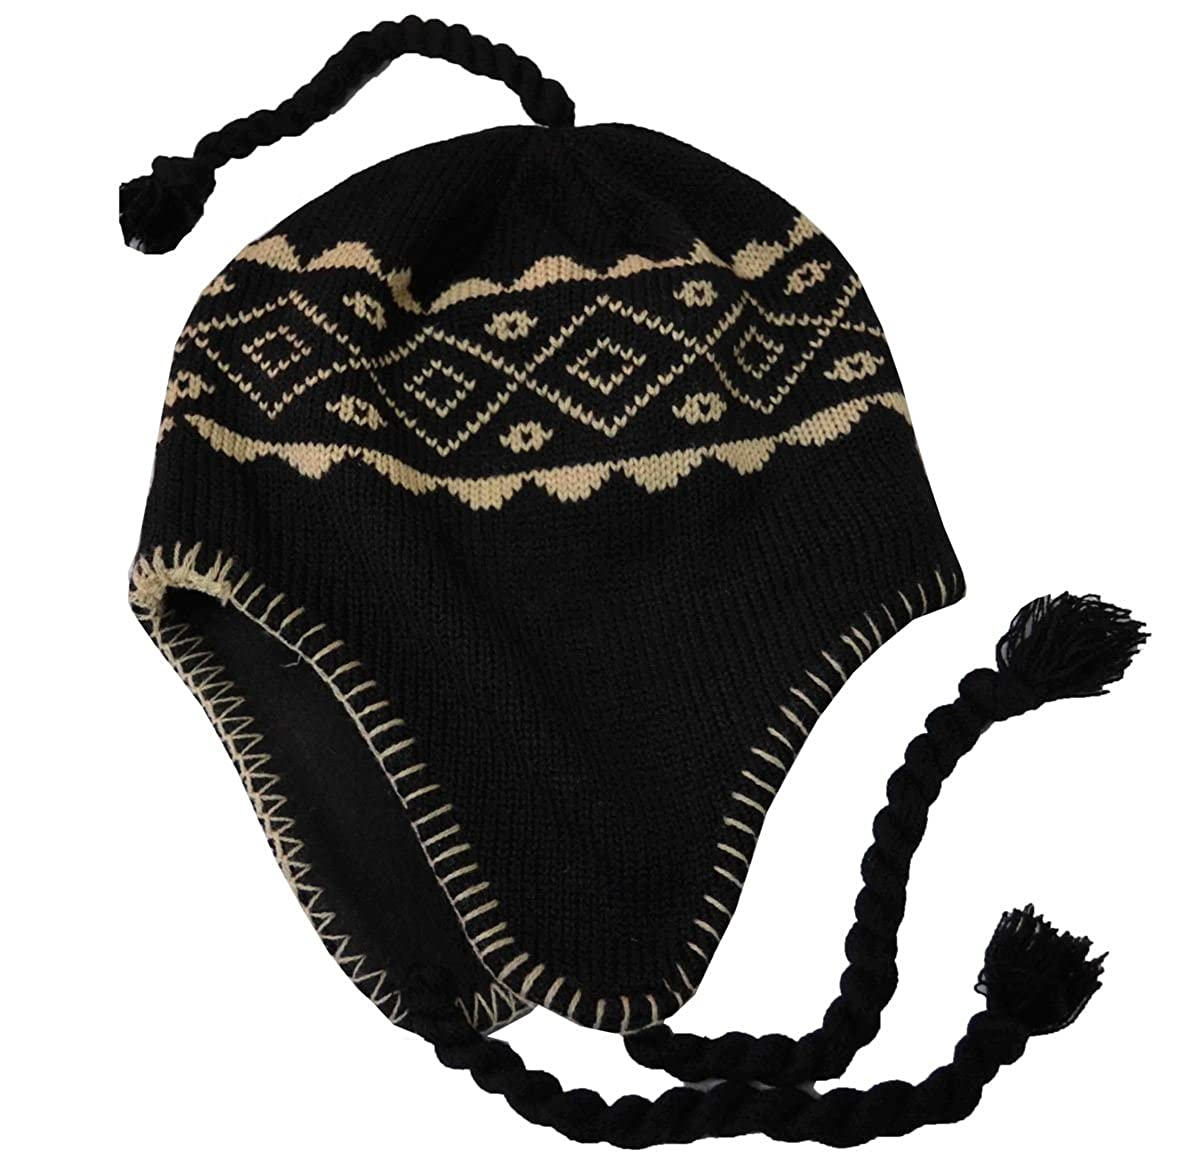 c6c7f9744ff16e SW Men's Peruvian Helmet Style Earflap Strings Beanie Knit Hat Black Khaki  at Amazon Men's Clothing store: